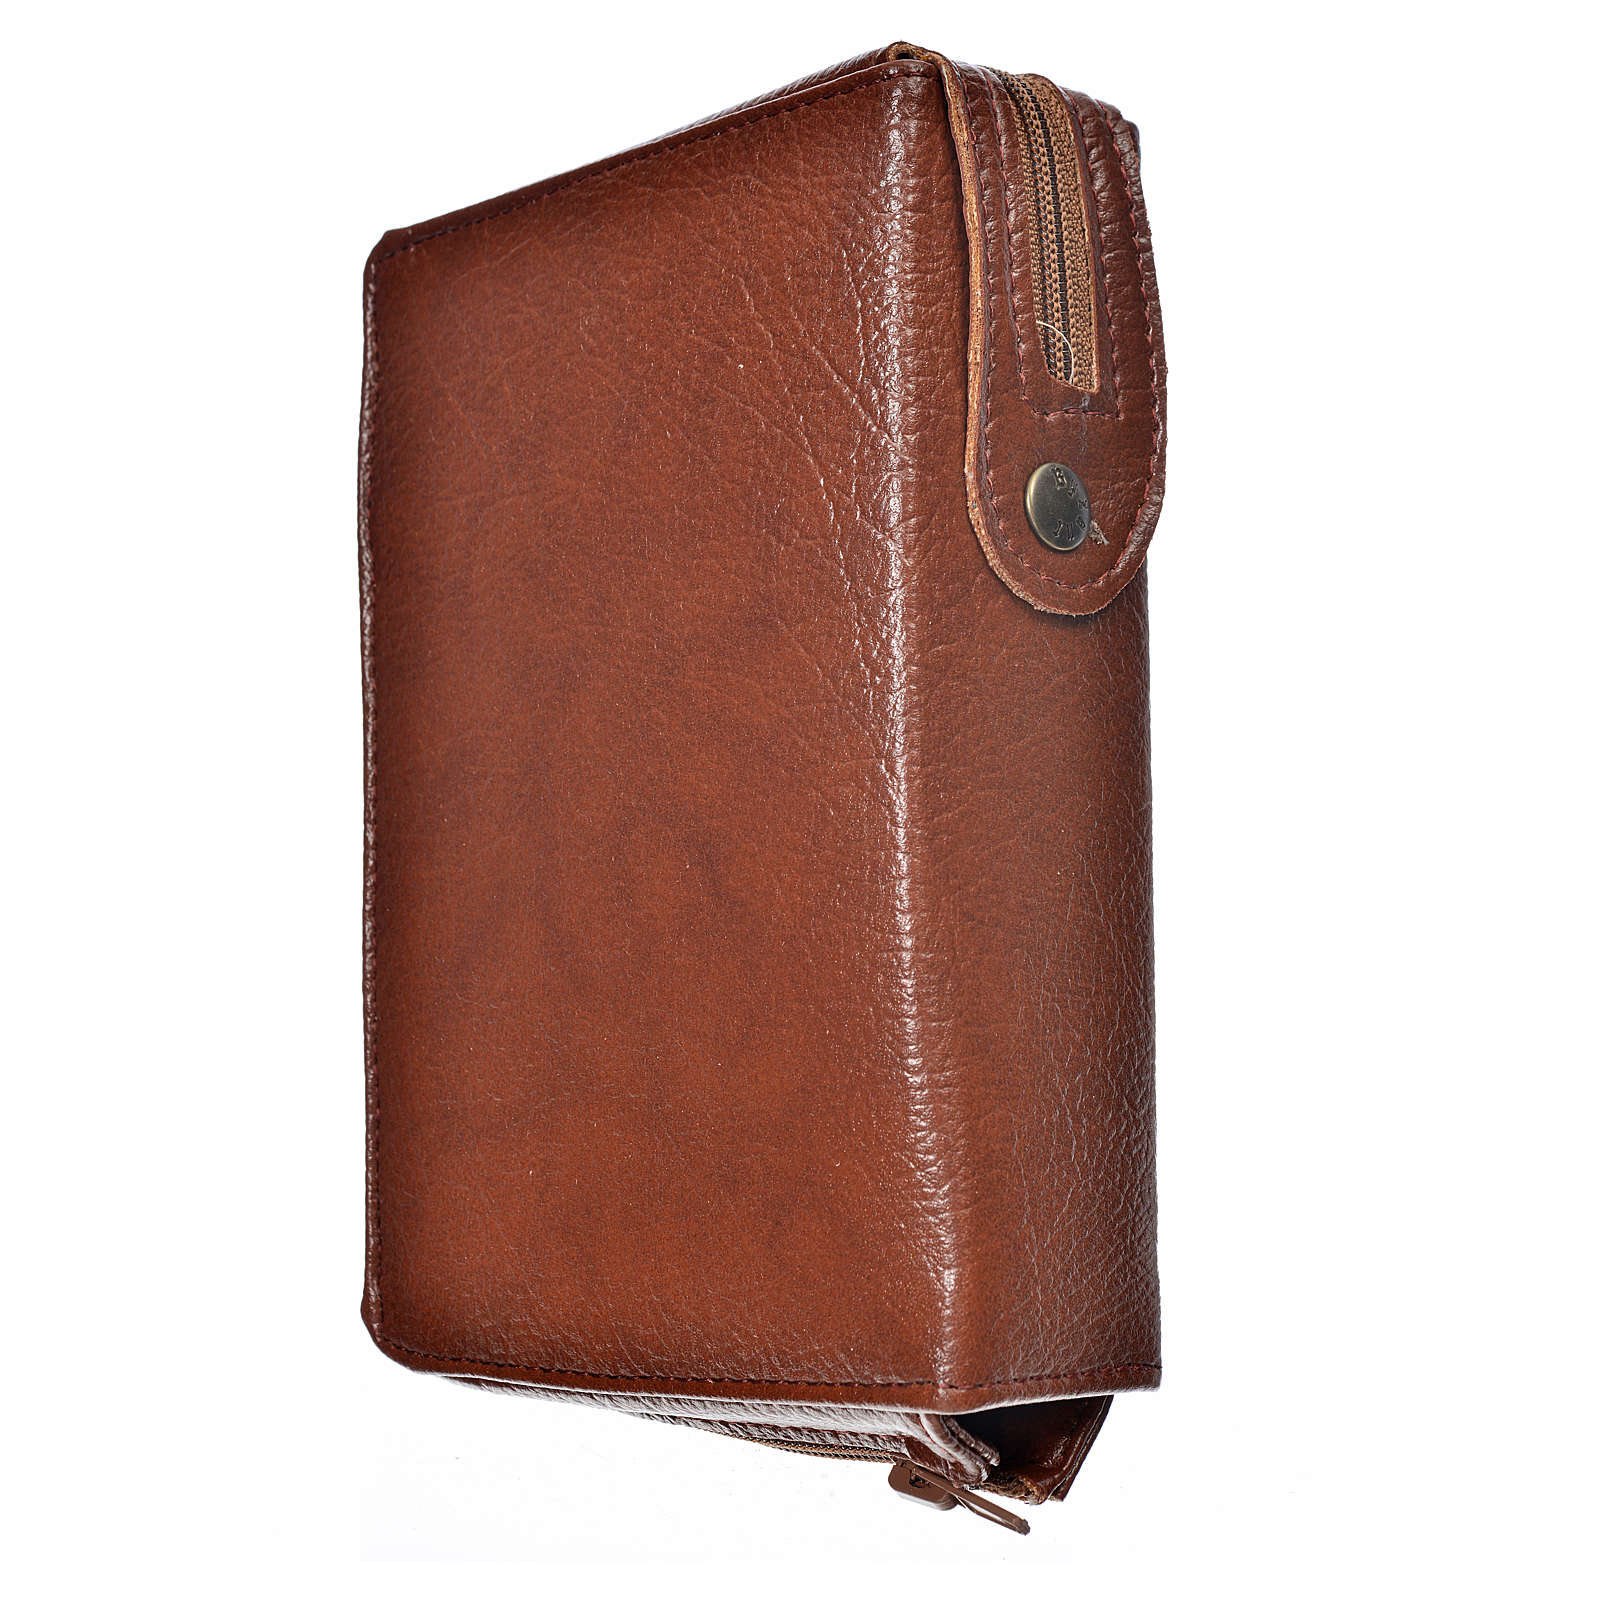 Morning & Evening prayer cover bonded leather, Our Lady of the Tenderness 4